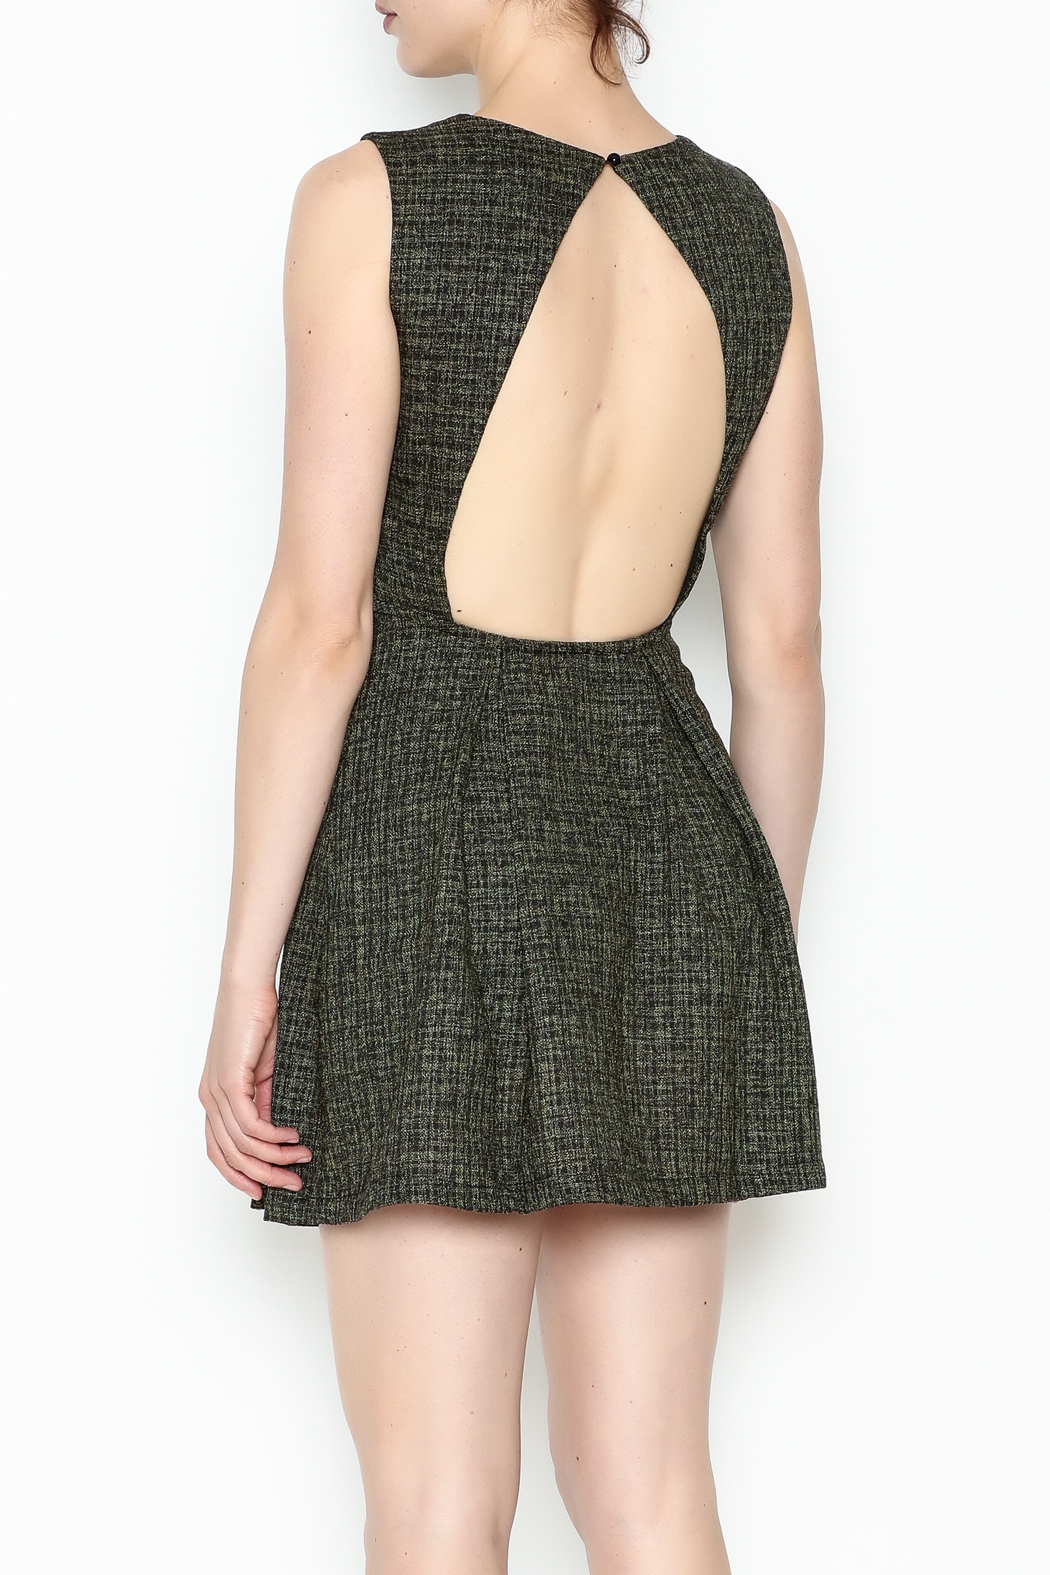 1 Funky Black Pleated Dress - Back Cropped Image